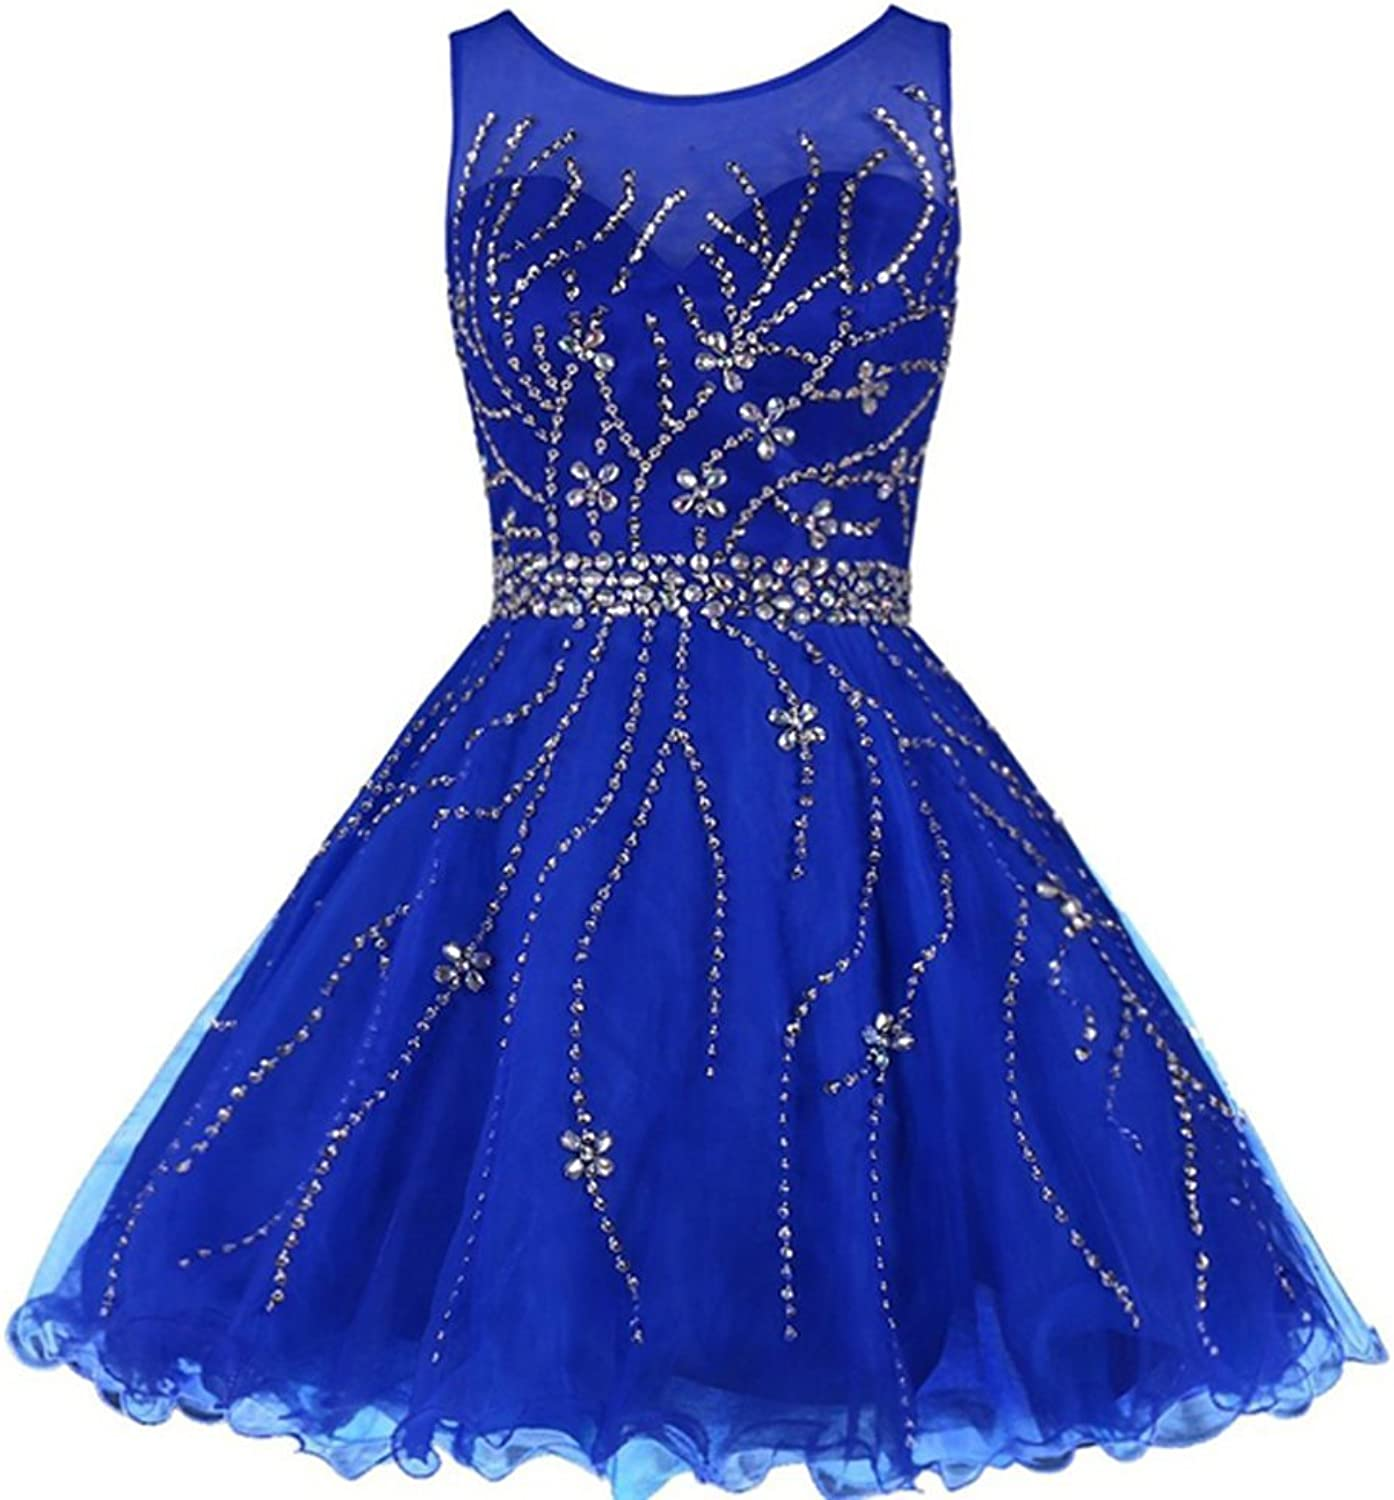 EllieHouse Womens Short Crystal Prom Gown Homecoming Dress H200